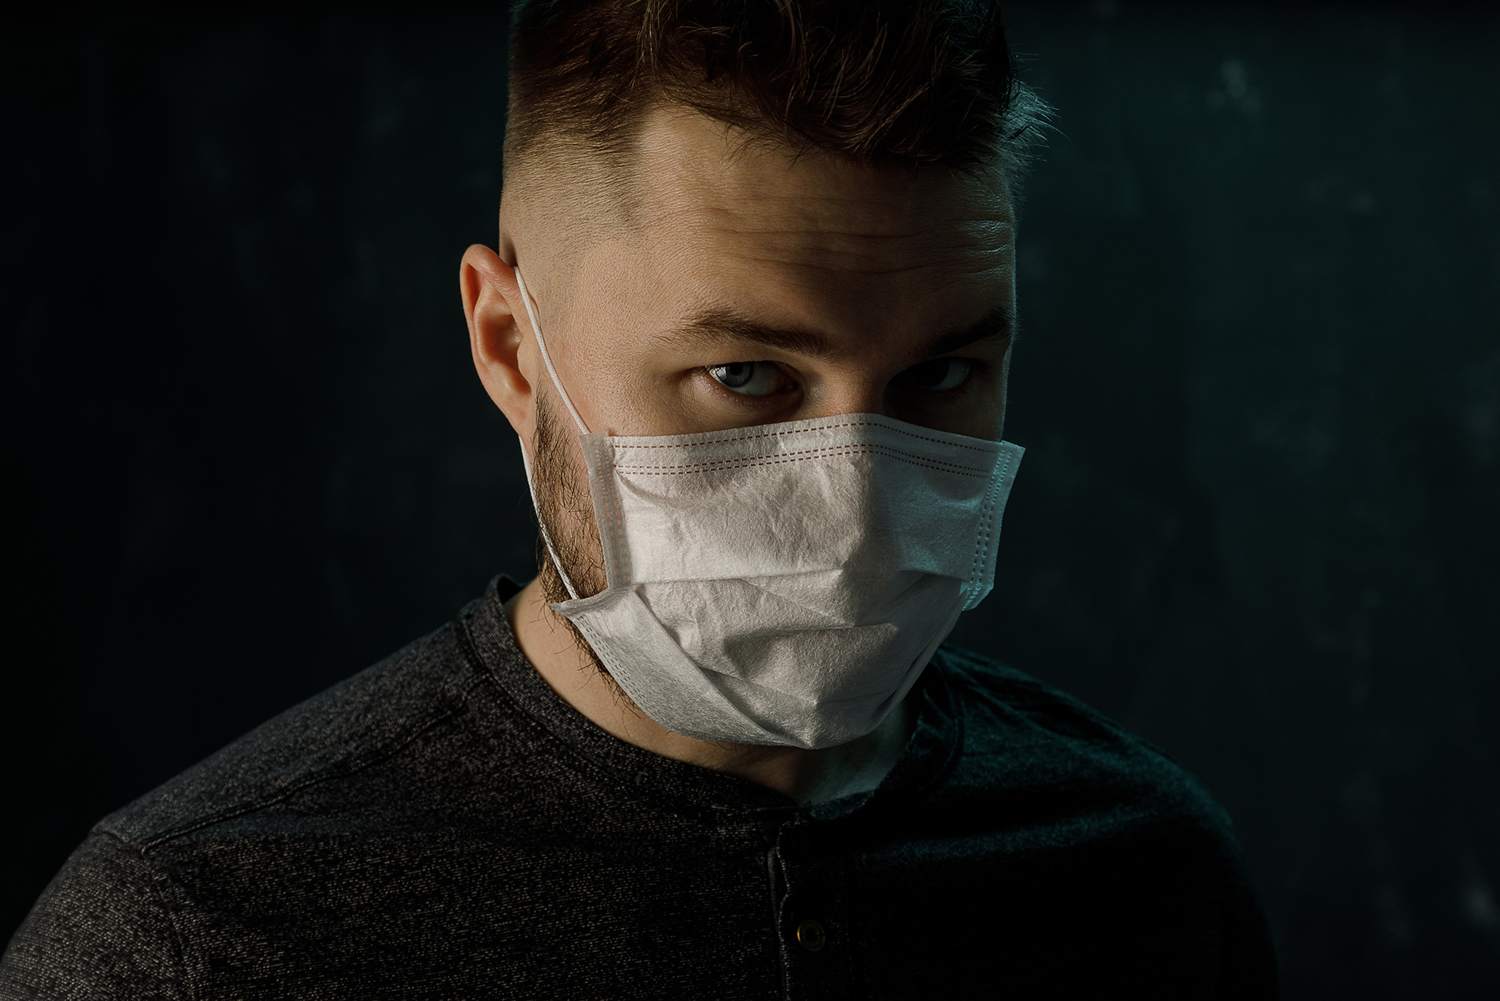 Male wearing surgical mask